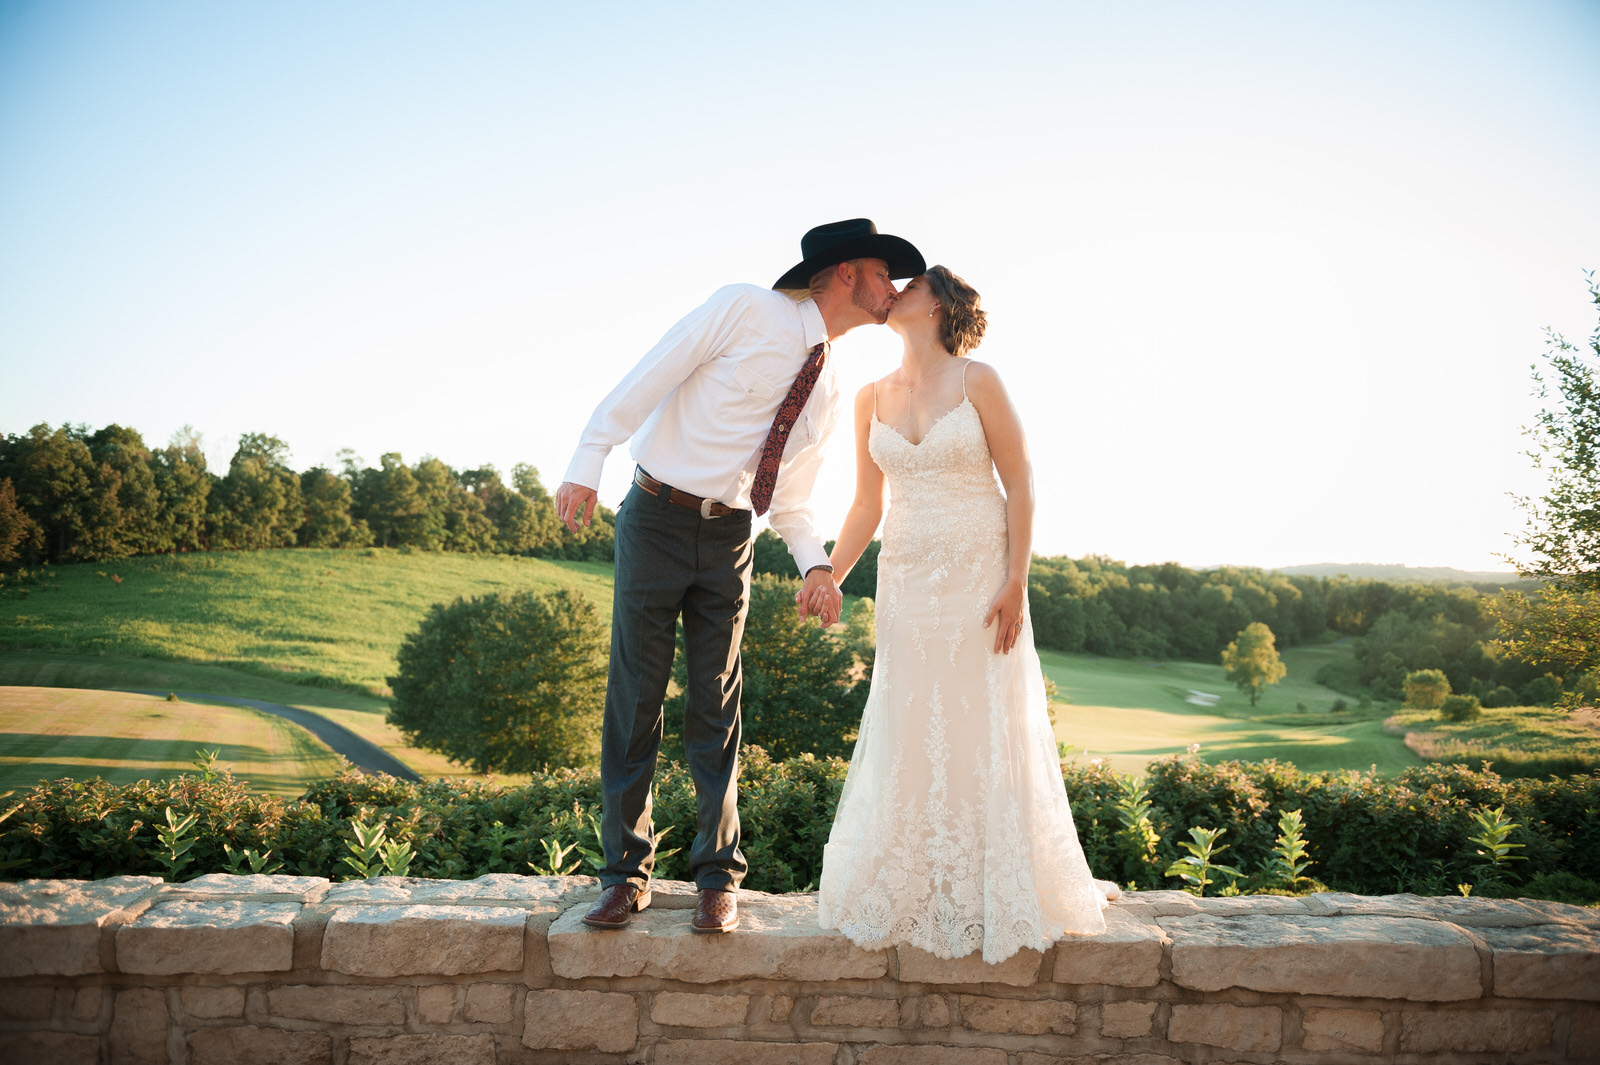 Golden Hour wedding photography at The Virtues Gold course in Nashport Ohio